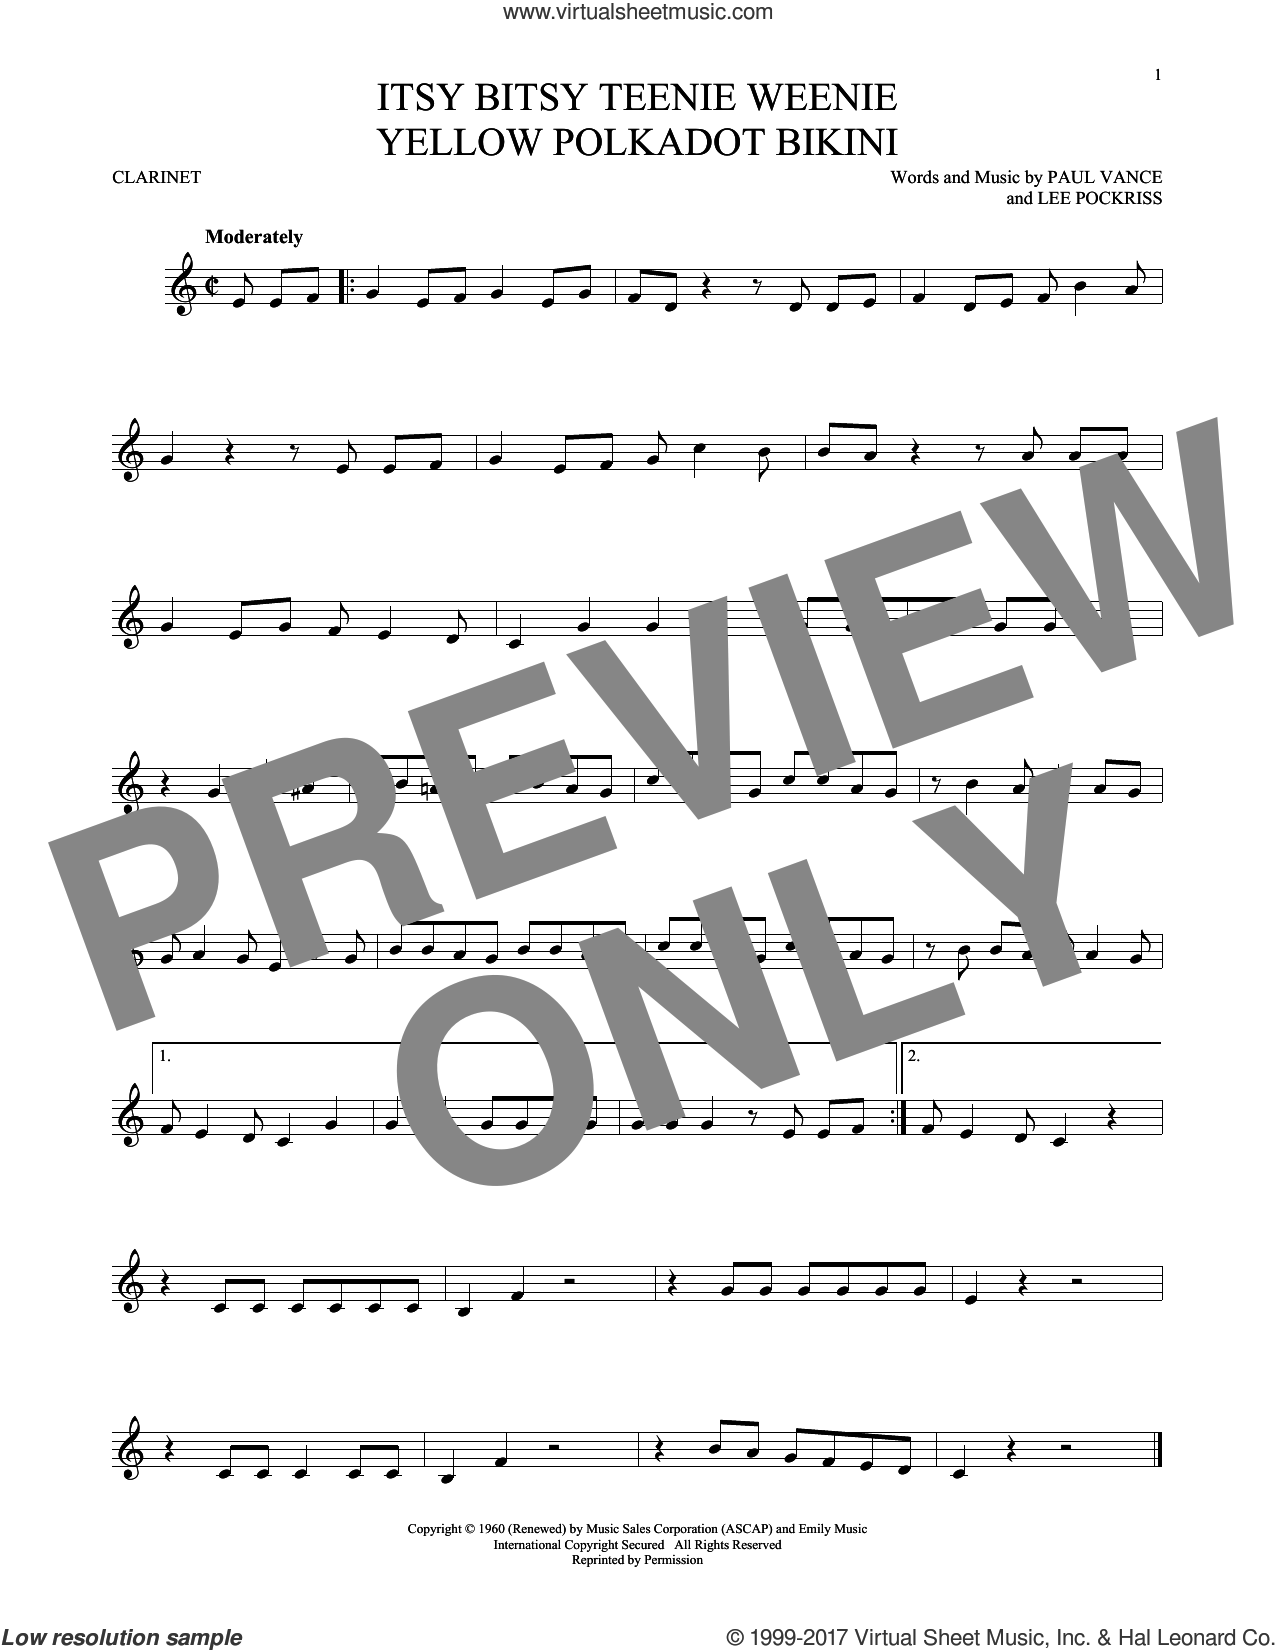 Itsy Bitsy Teenie Weenie Yellow Polkadot Bikini sheet music for clarinet solo by Brian Hyland, Lee Pockriss and Paul Vance. Score Image Preview.